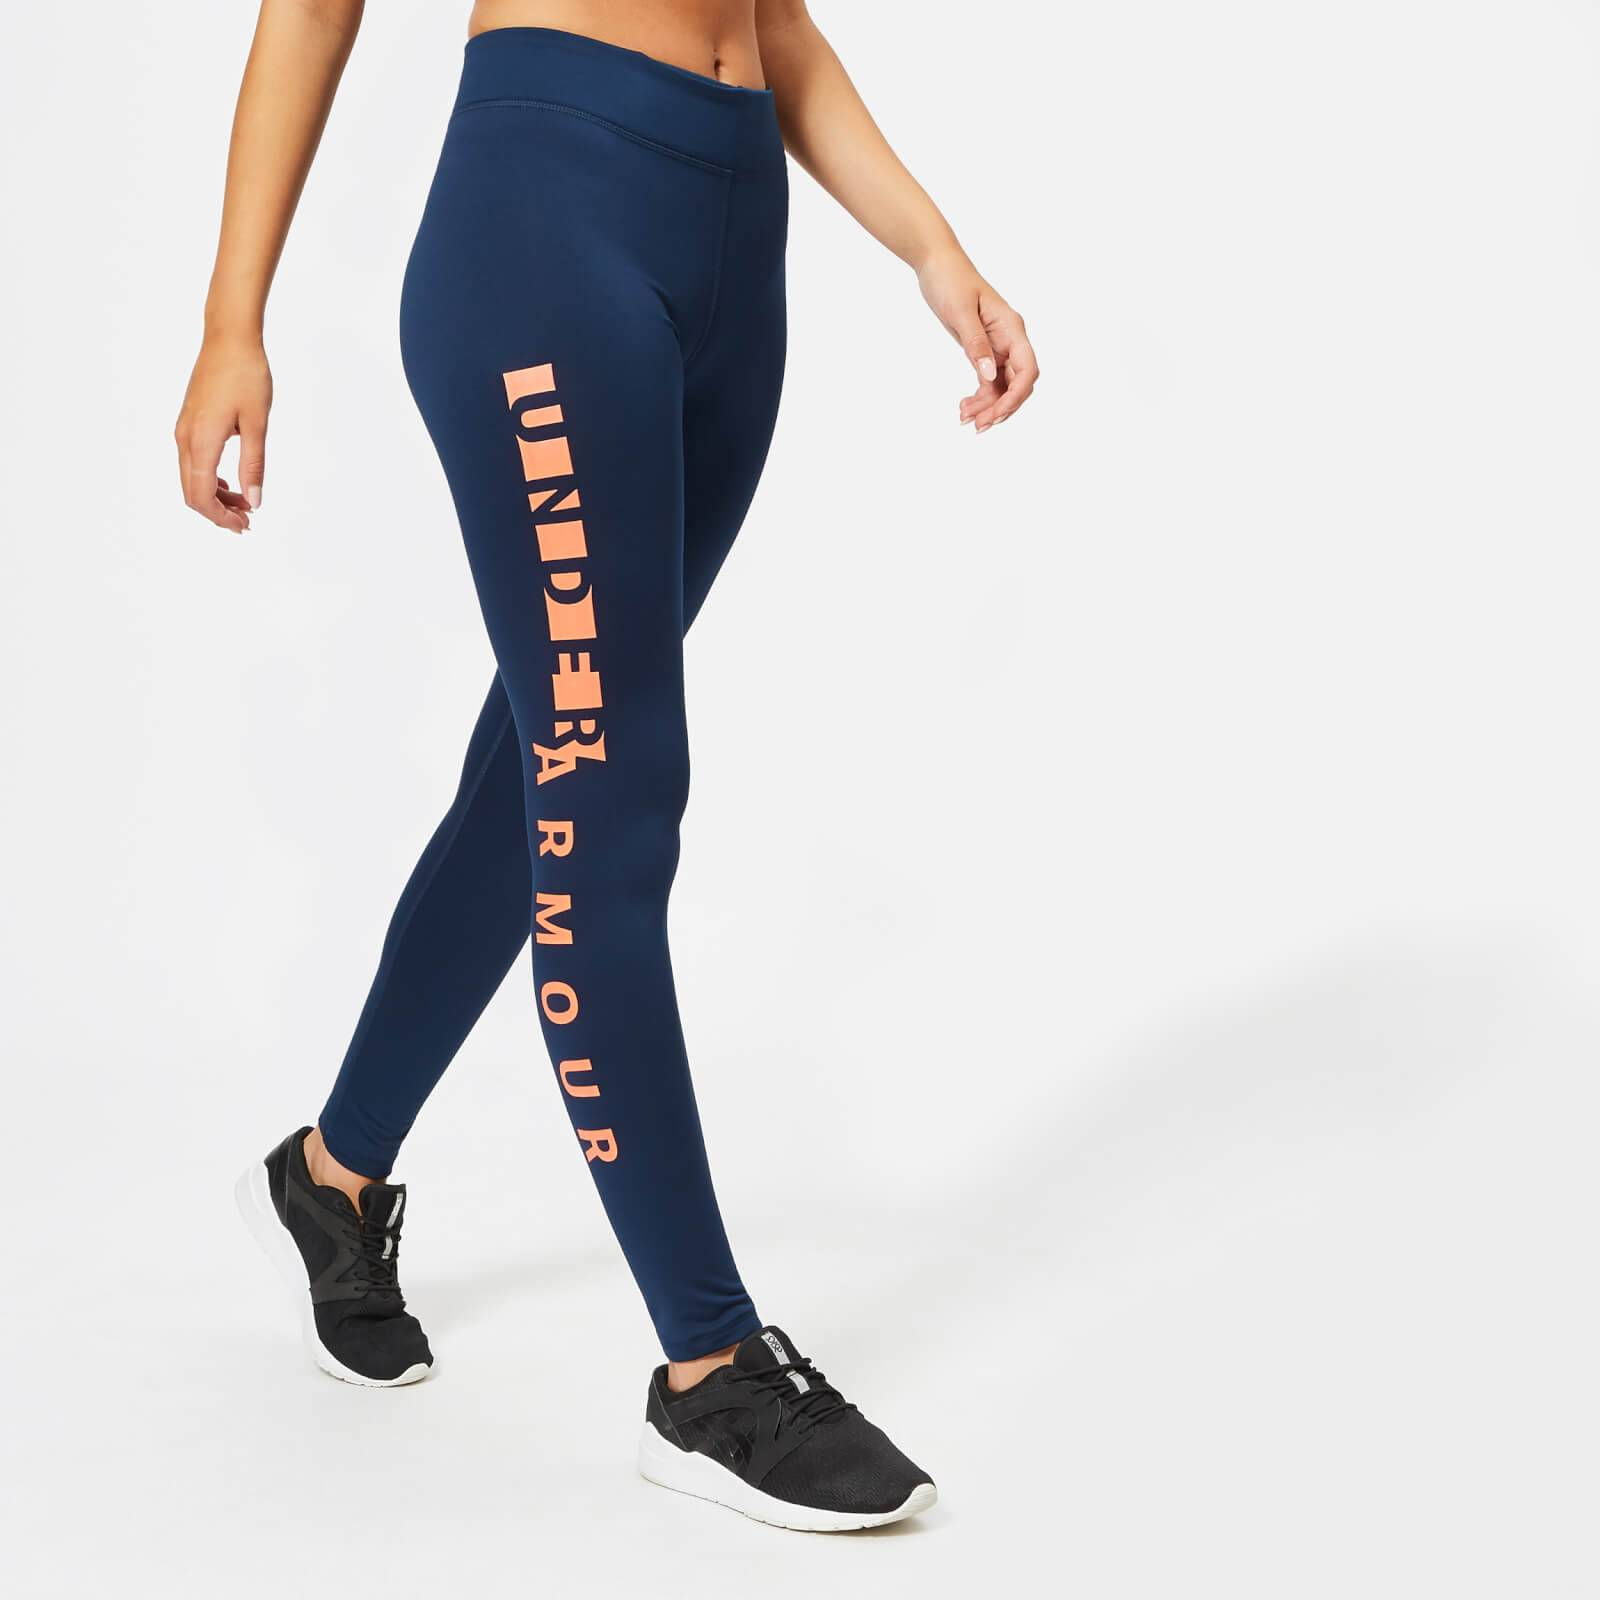 Under Armour Women's Cold Gear Leggings - Academy/After Burn/Silver - XS - Blue